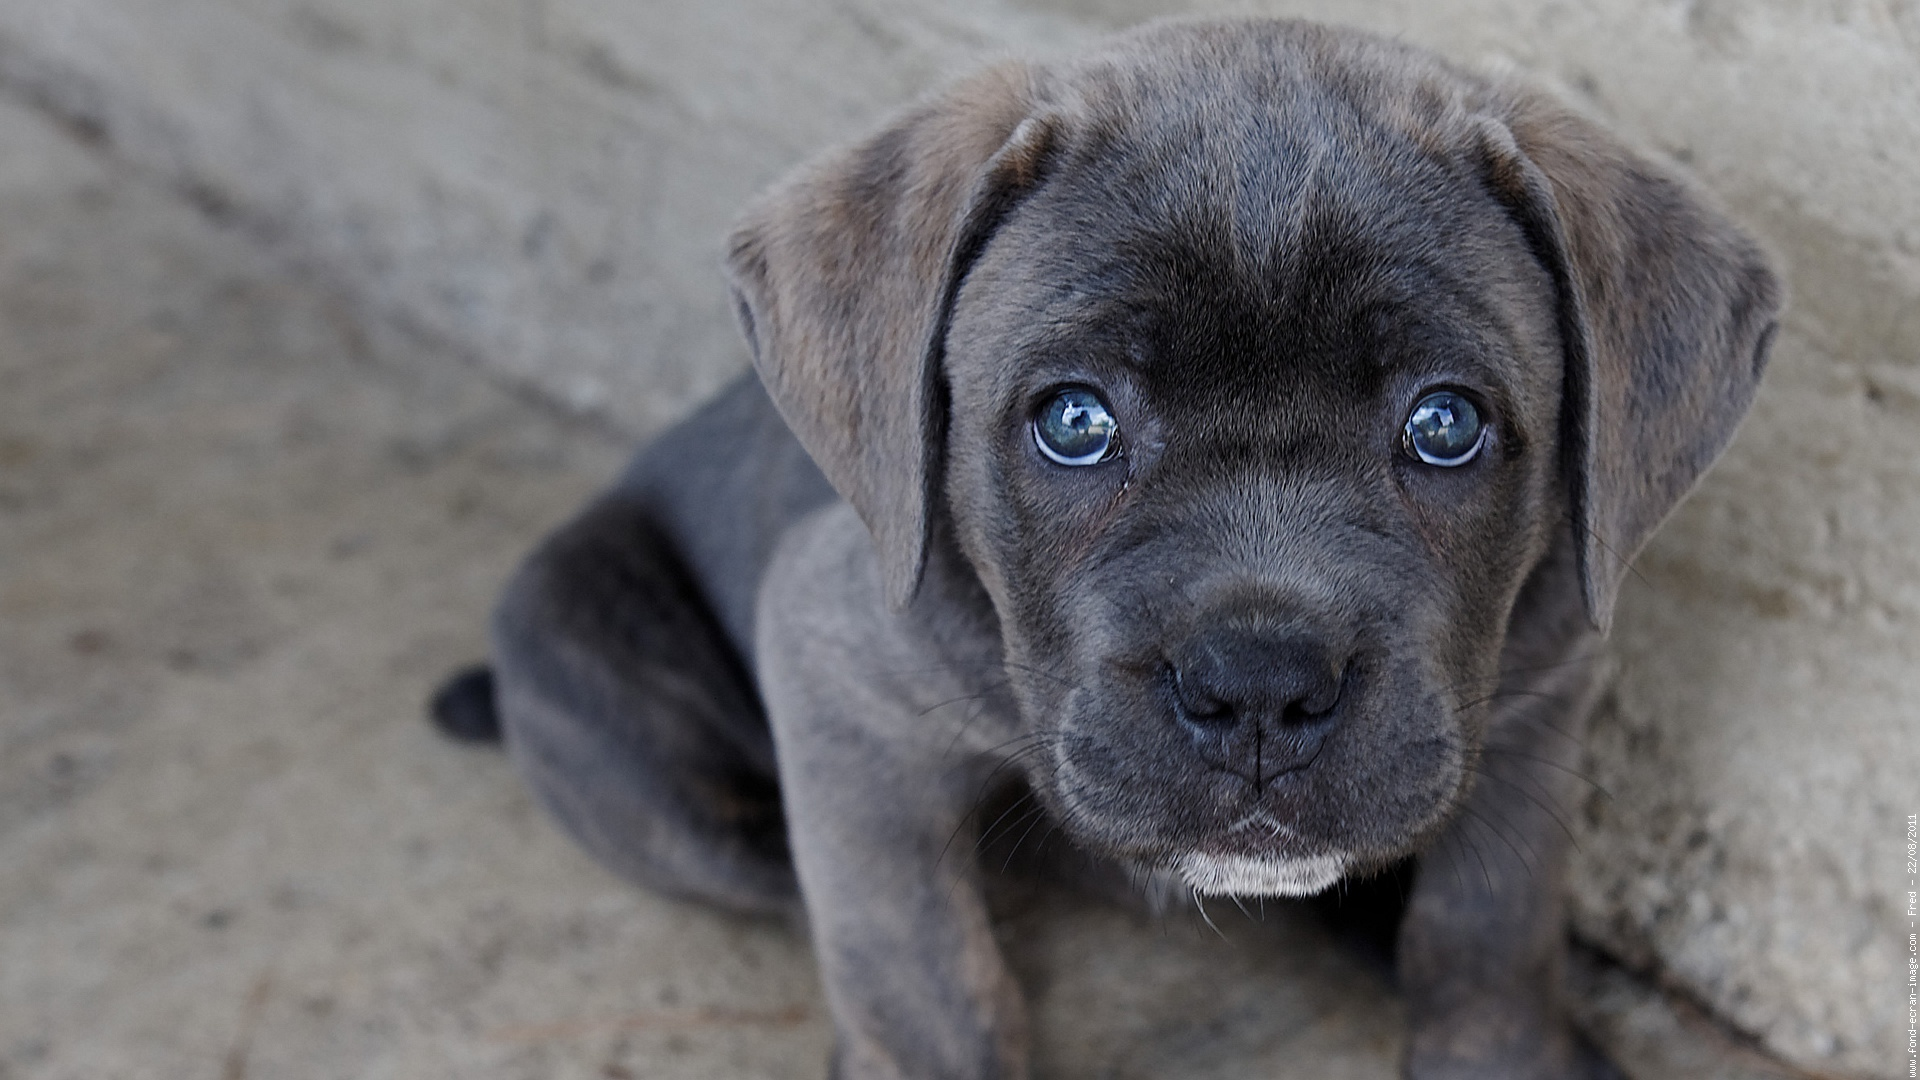 Goddess Photo Cane Corso Godess La Petite Wallpaper #134501 - Resolution 1920x1080 px